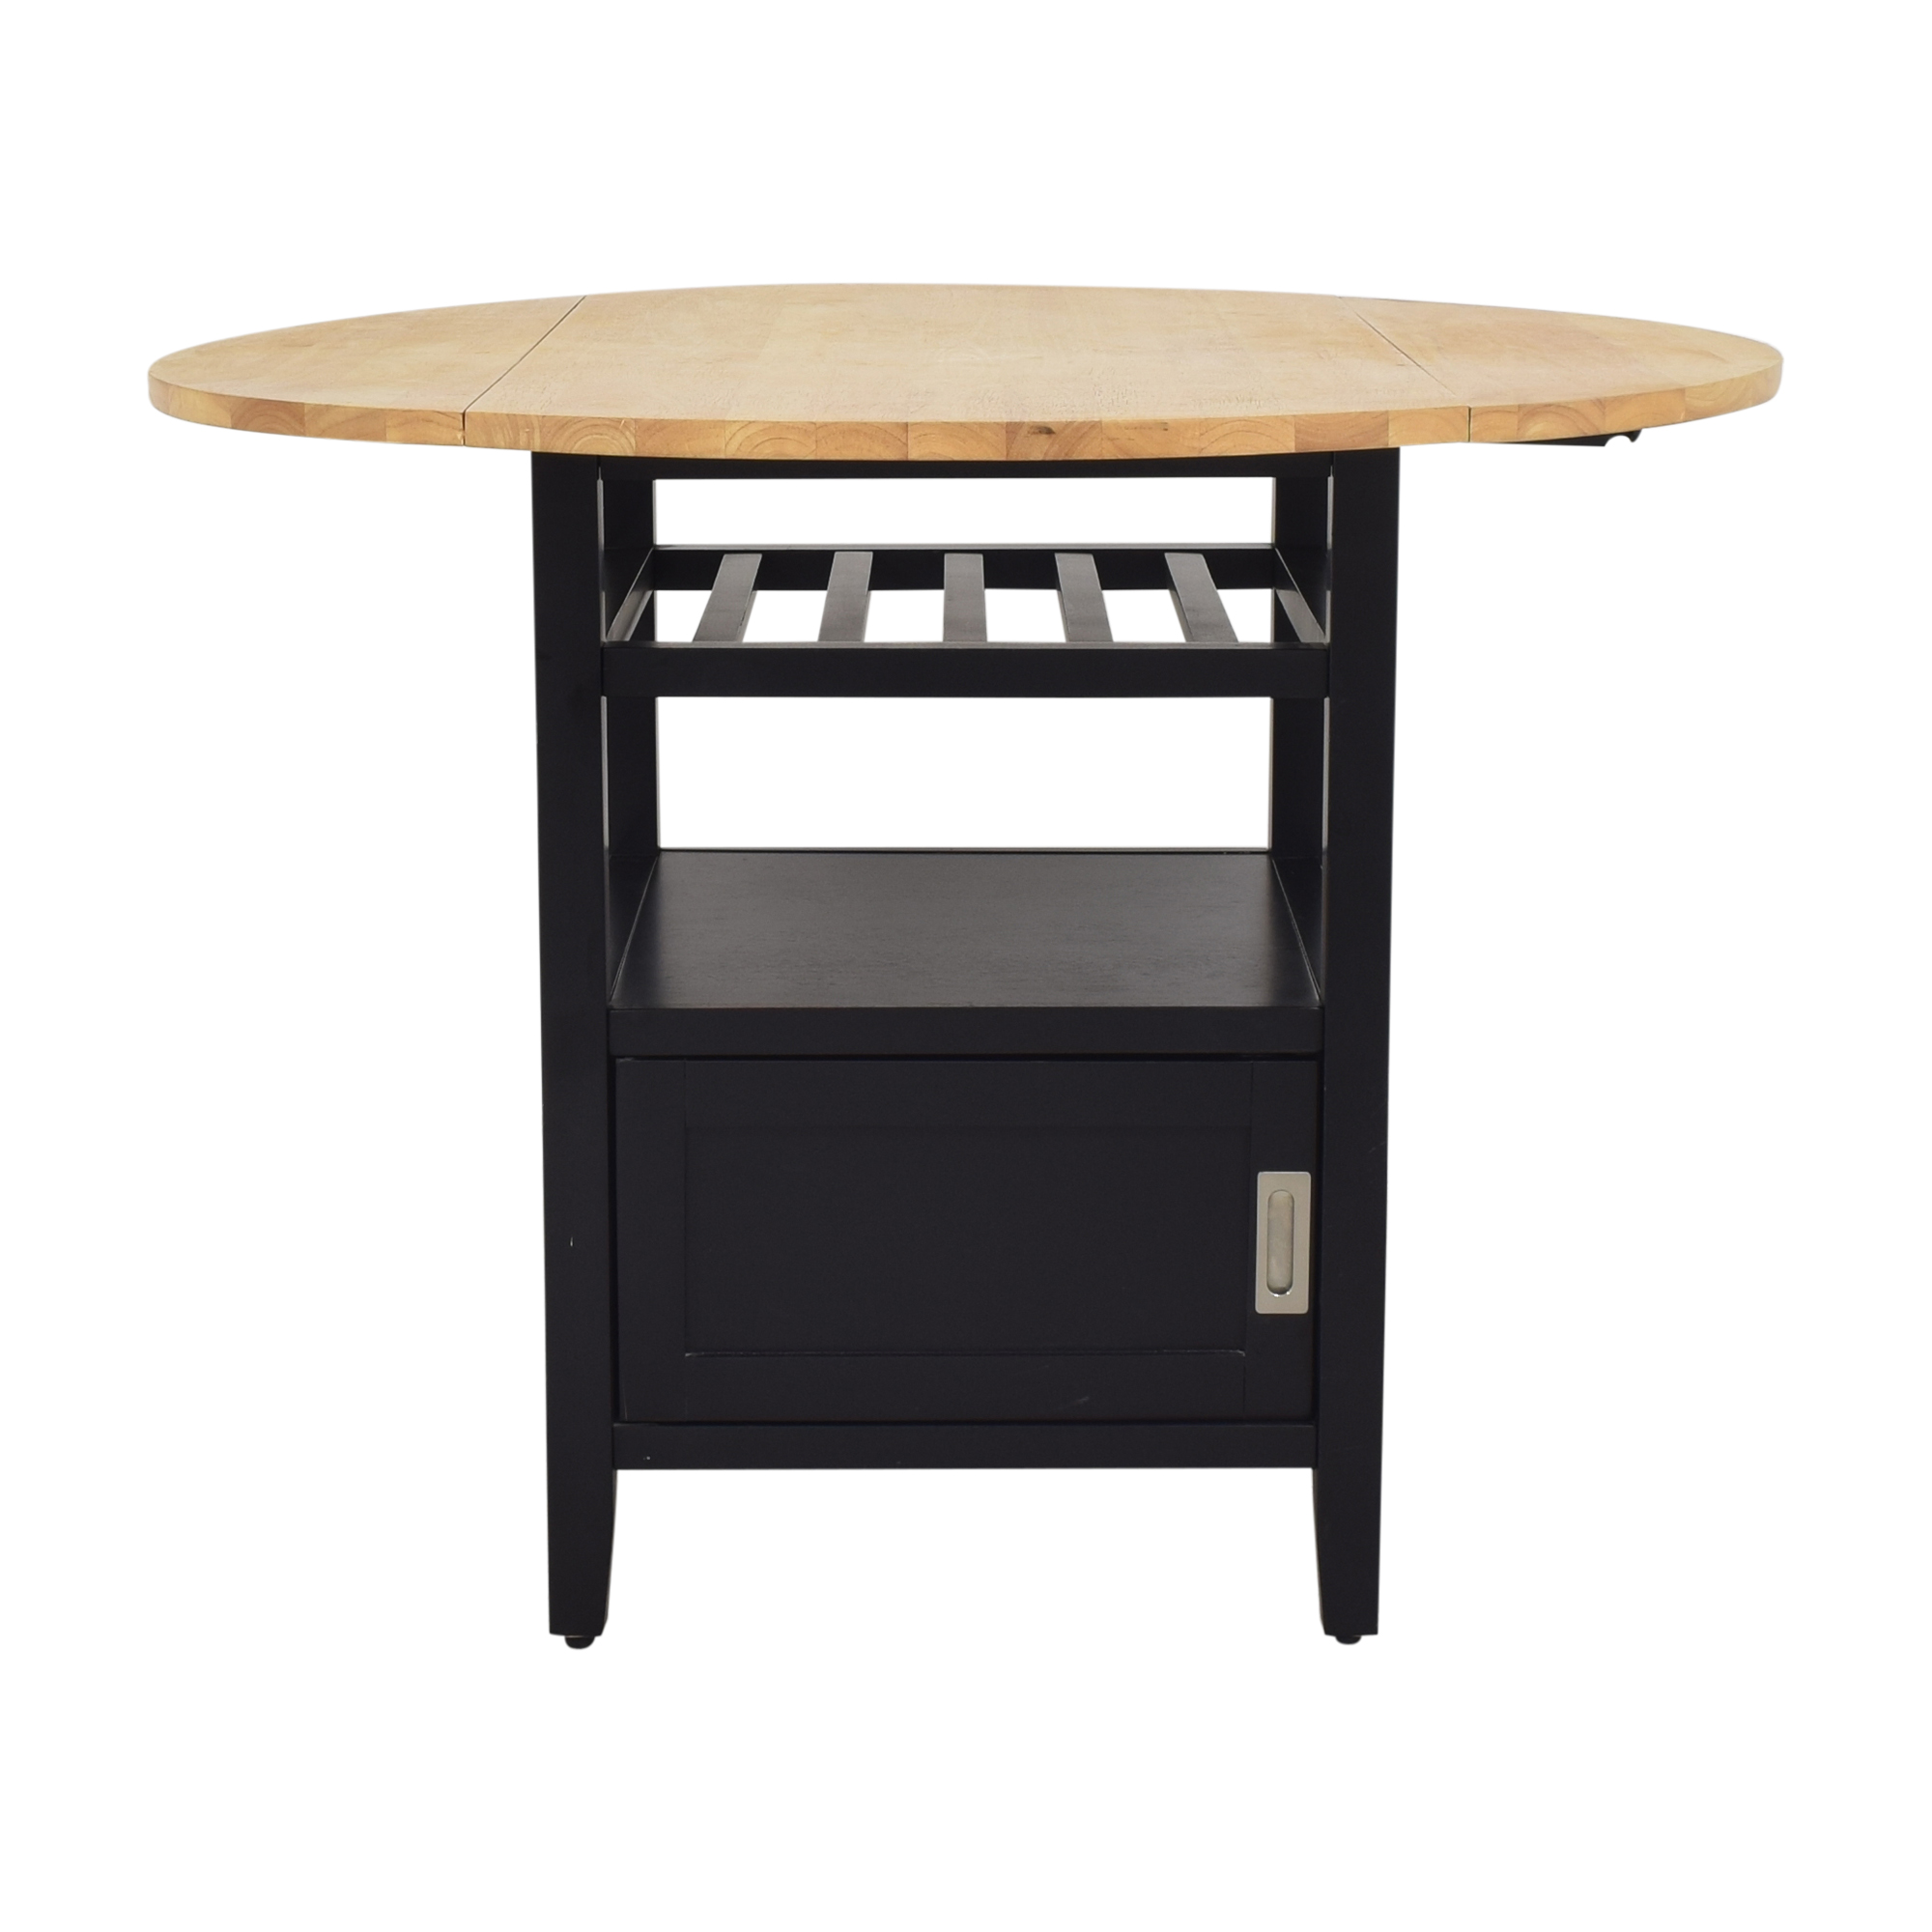 Crate & Barrel Crate & Barrel Belmont High Dining Table nyc